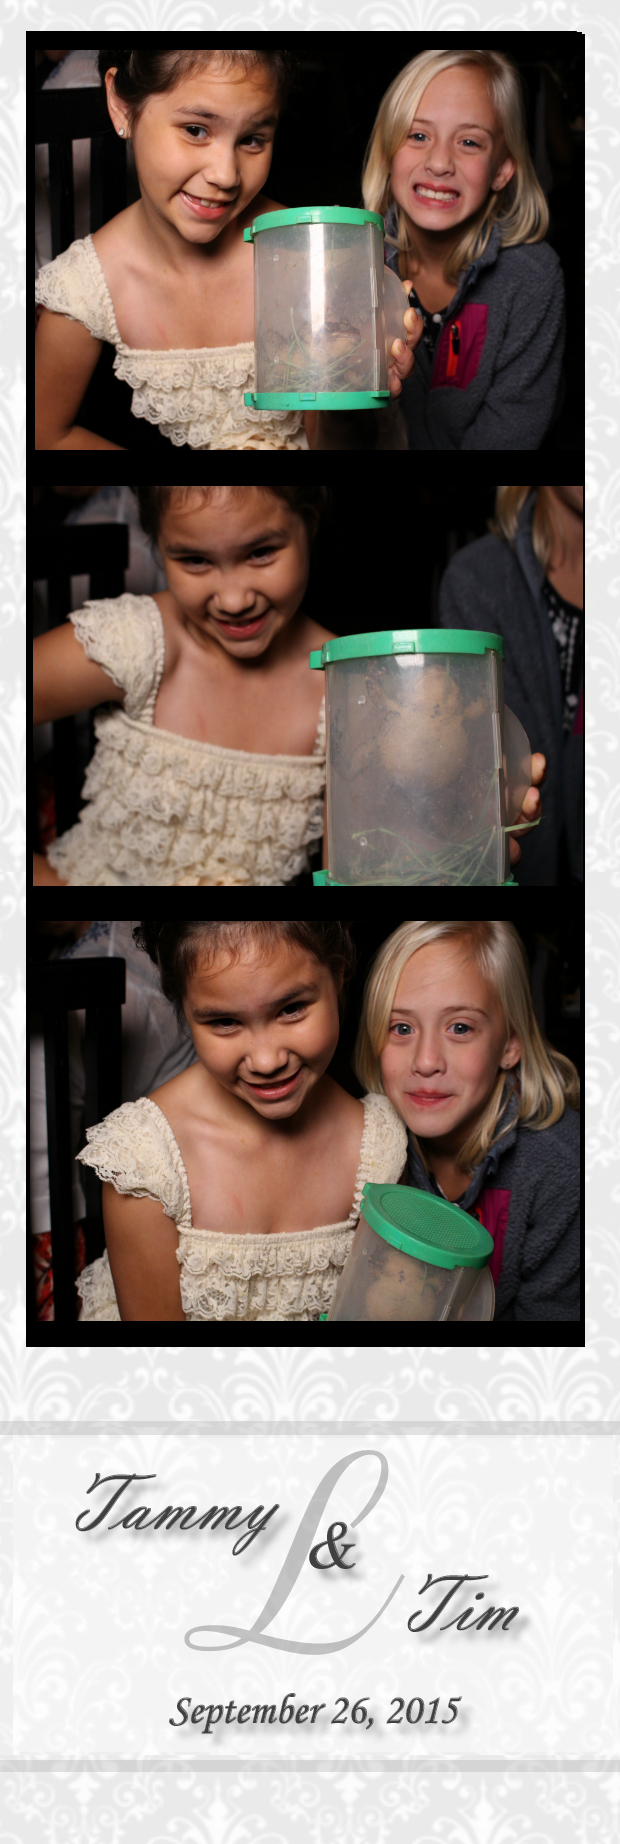 Guest House Events Photo Booth Strips T&T (14).jpg